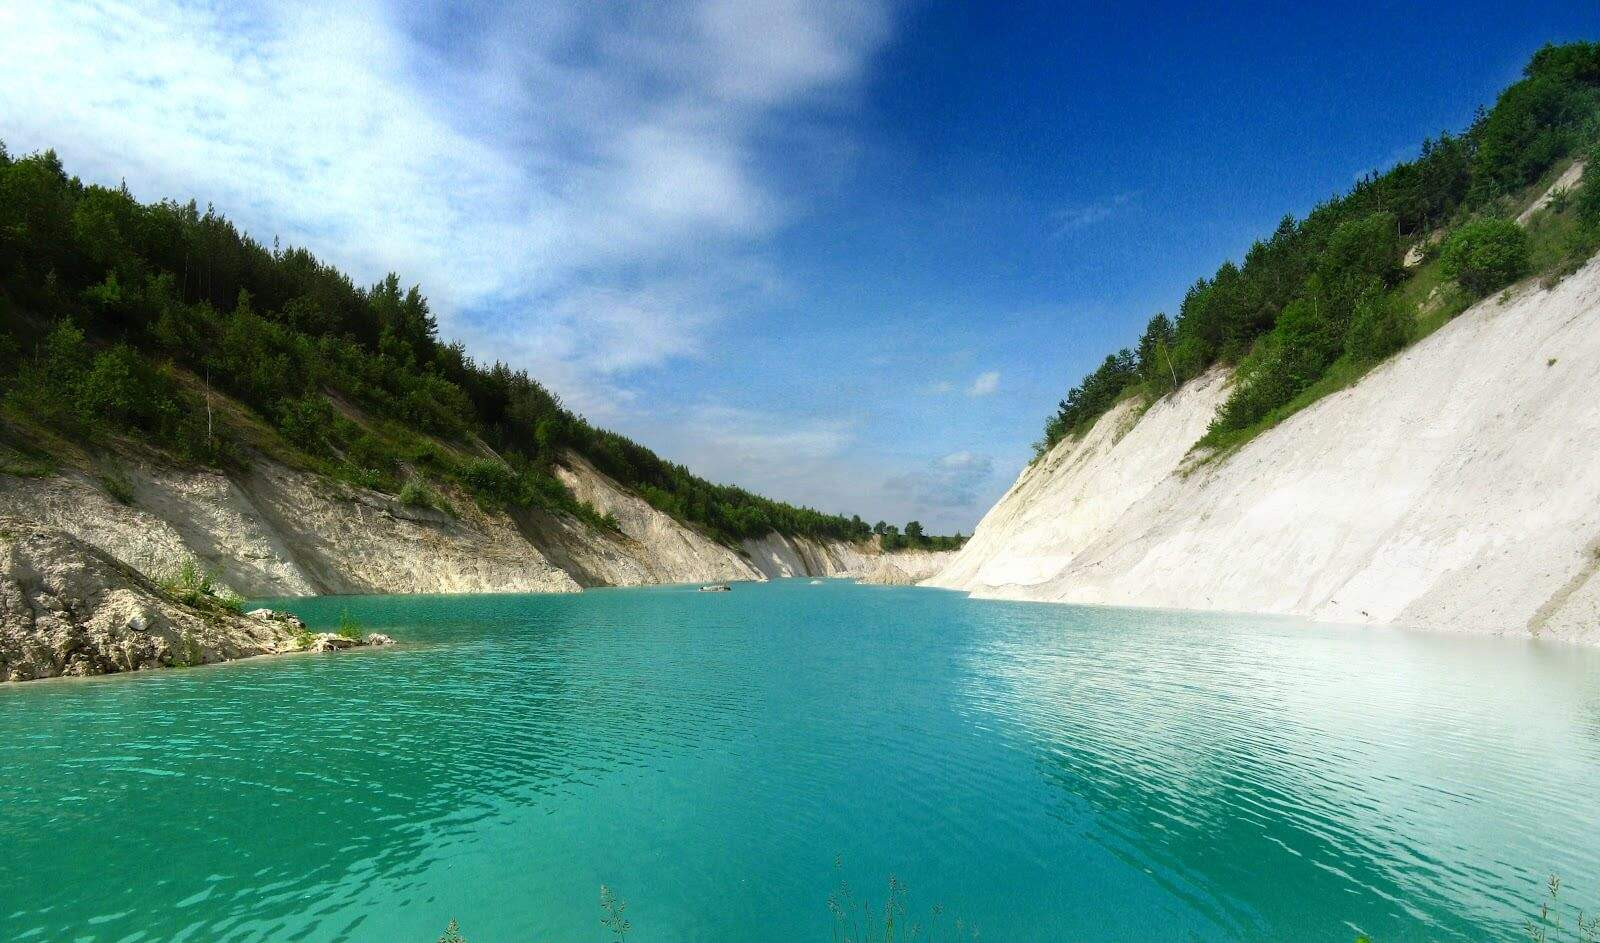 Turquose water of chalkpits in Belarus, Belarus tourist attractions